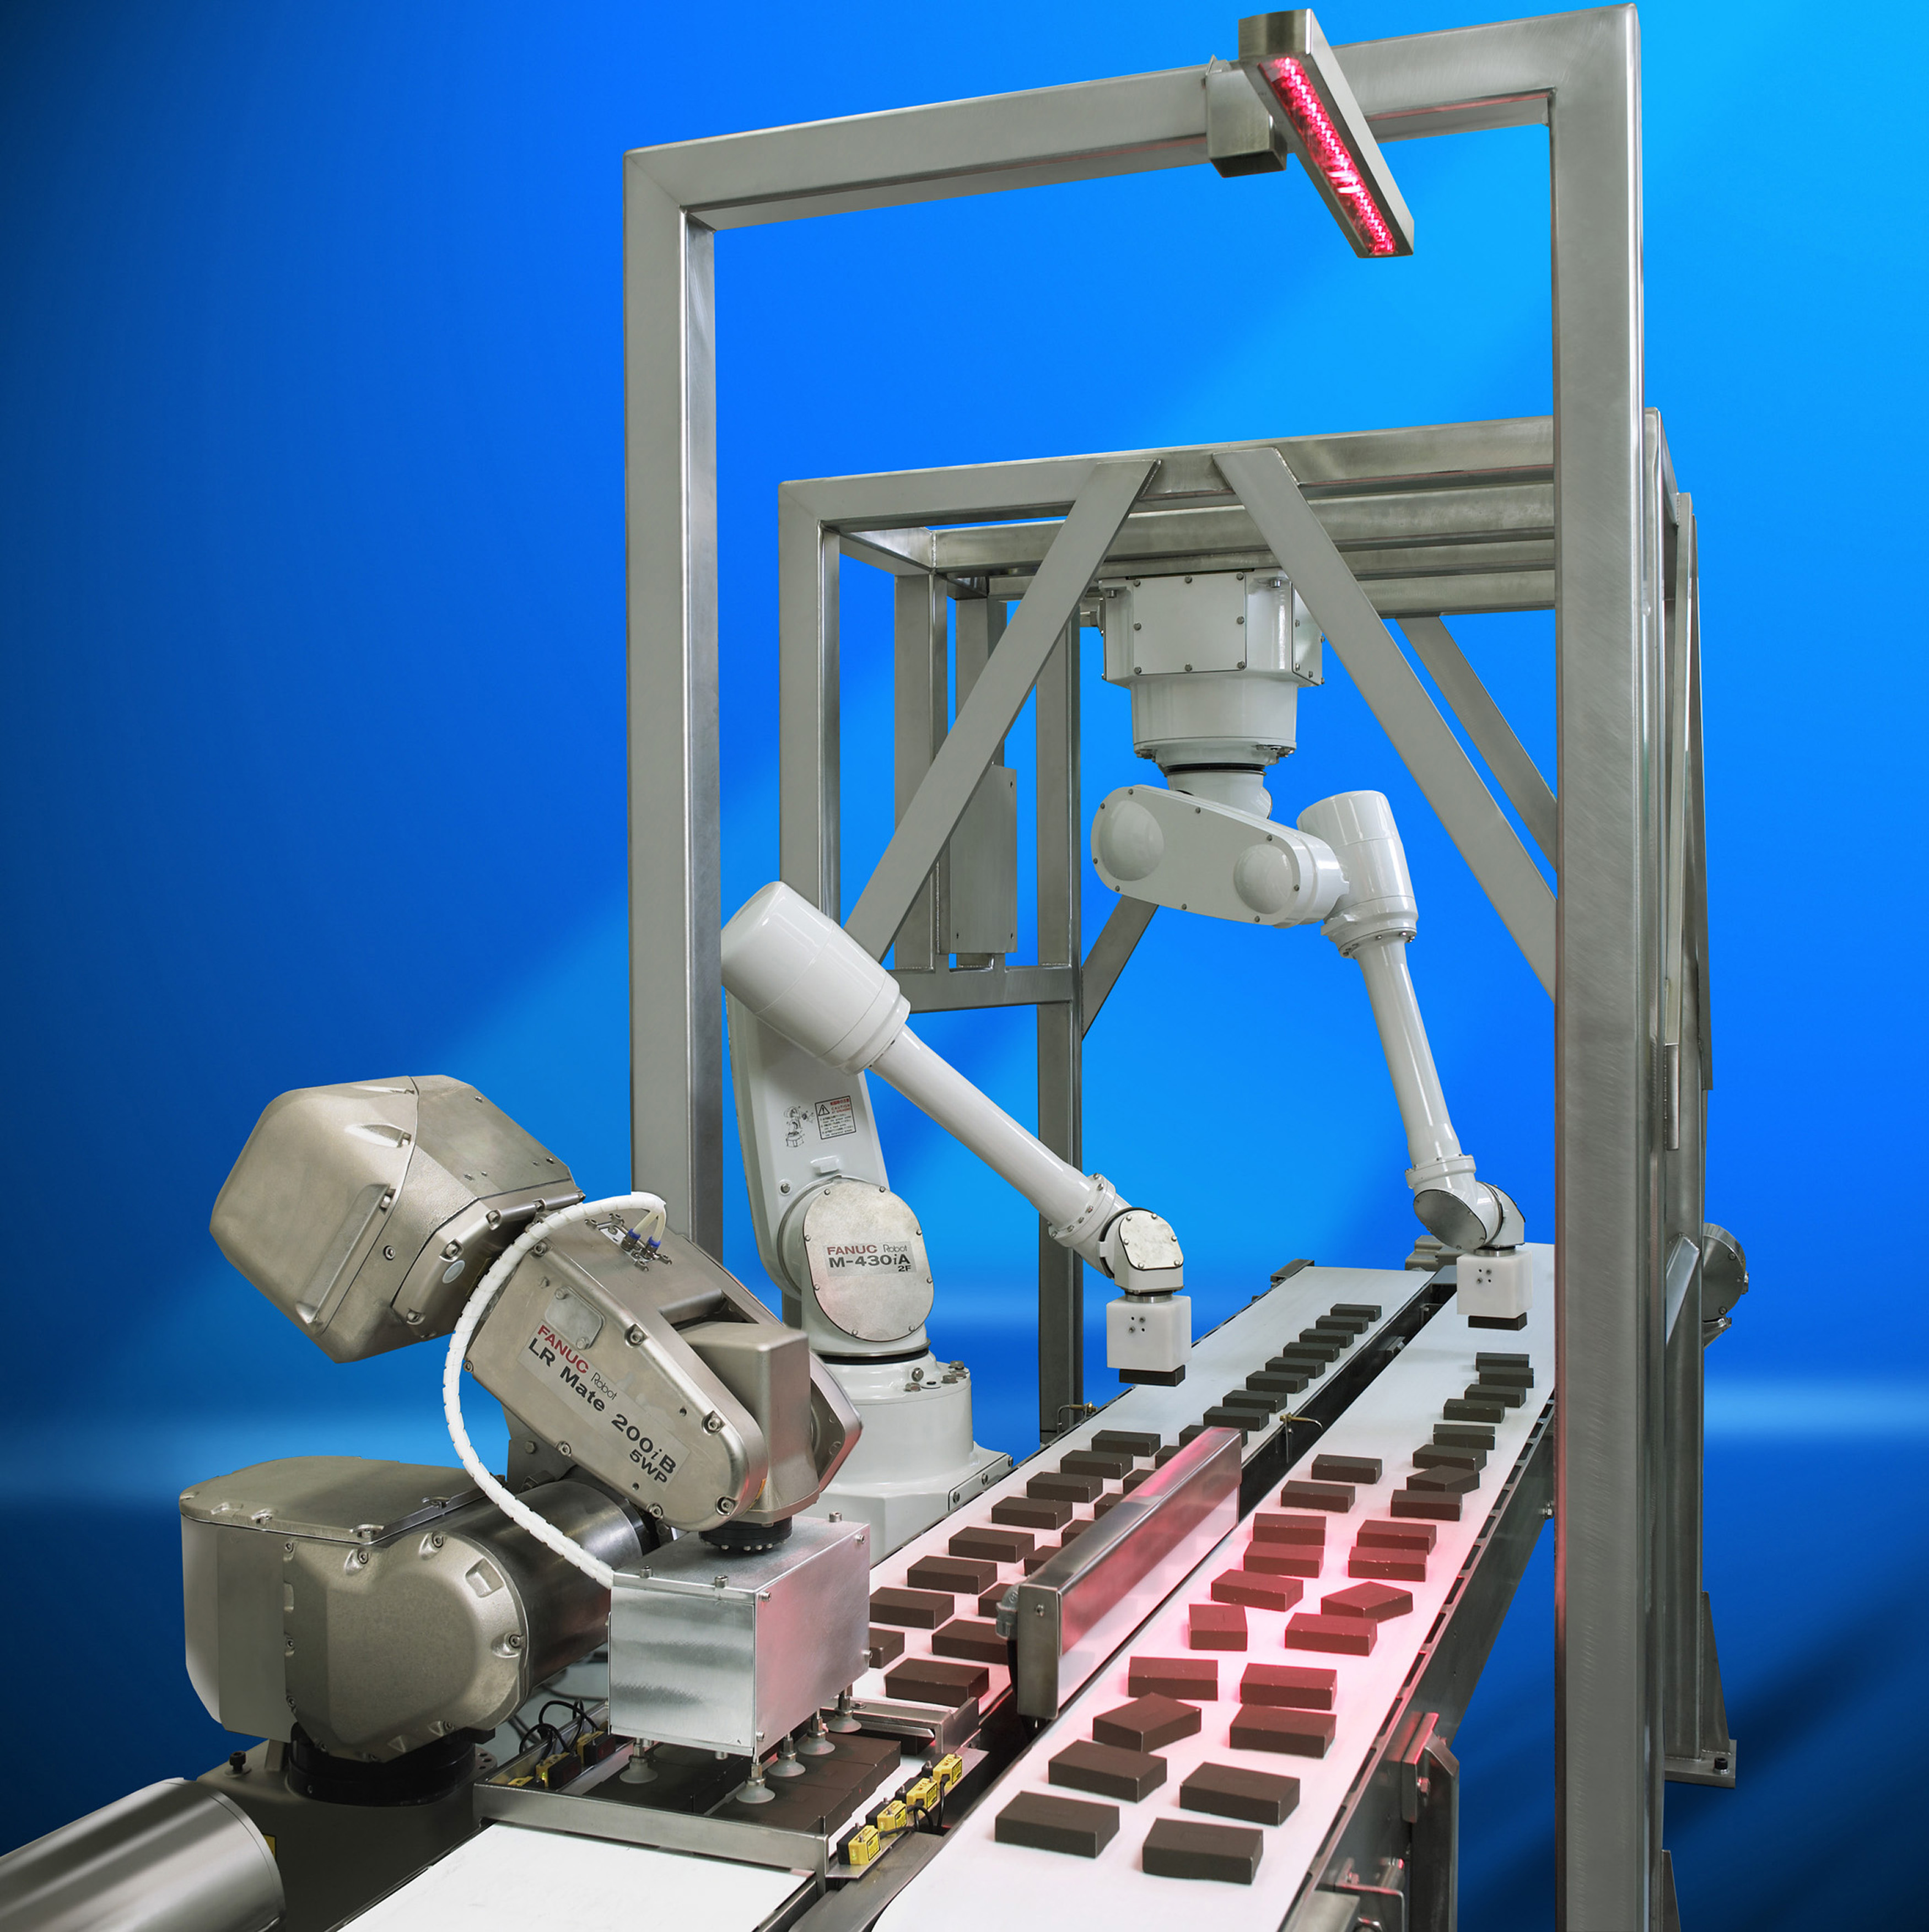 Pacepacker To Offer 20+ Robot Options for Food Handling, Assembly